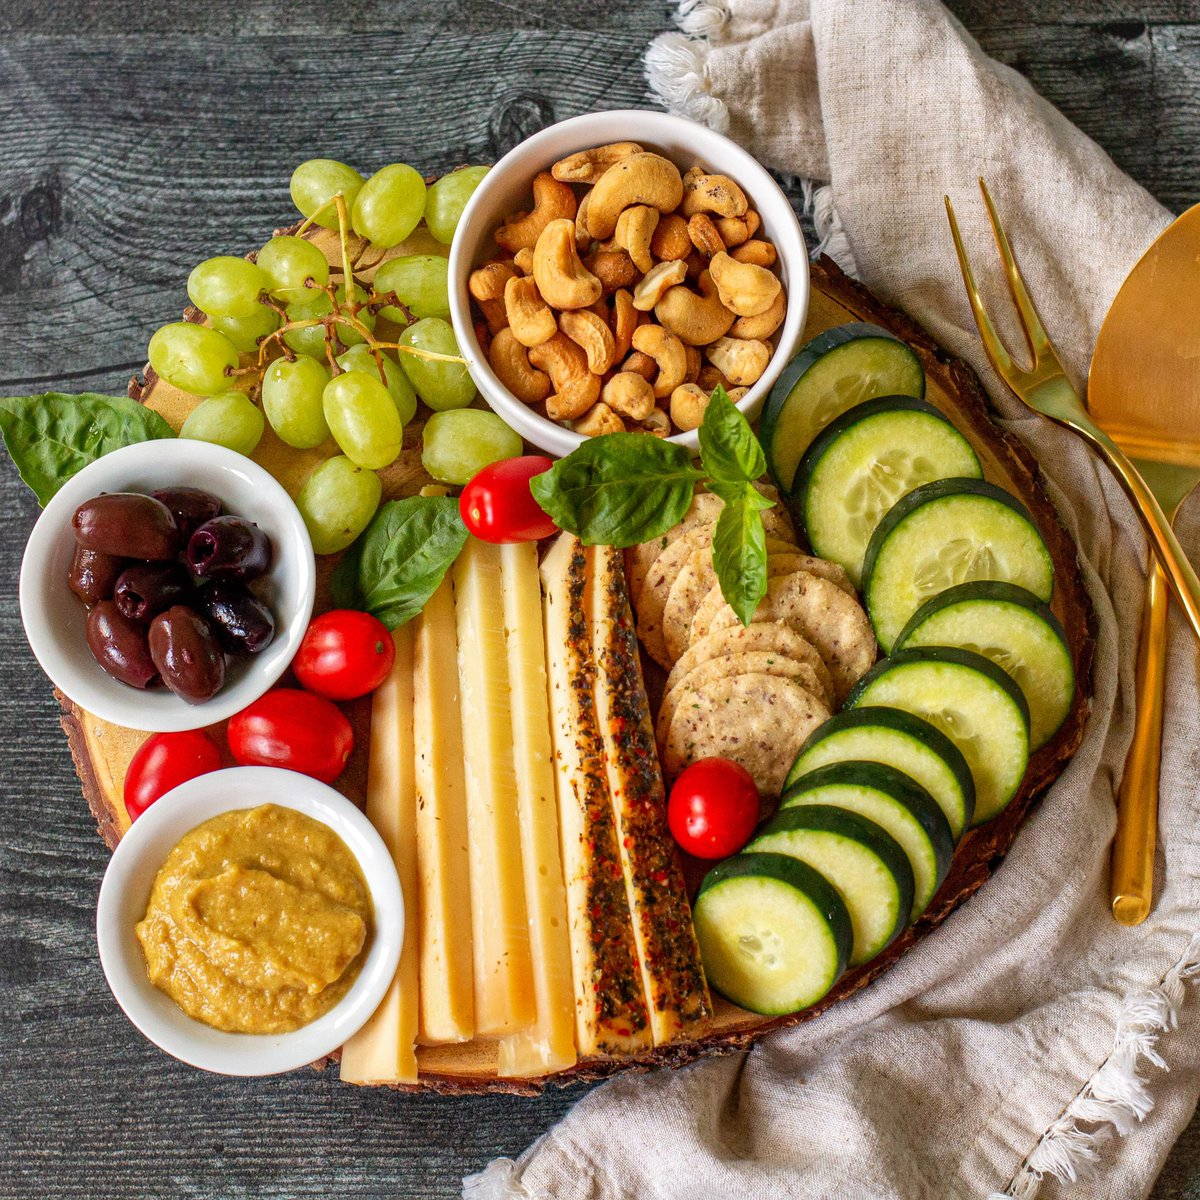 test Twitter Media - {recipe} #LowCarb & #GestationalDiabetes Friendly Cheese Board  Pregnancy and my gestational diabetes diagnosis are not going to stop me from my love of cheese boards. https://t.co/L5x6J6vJN1